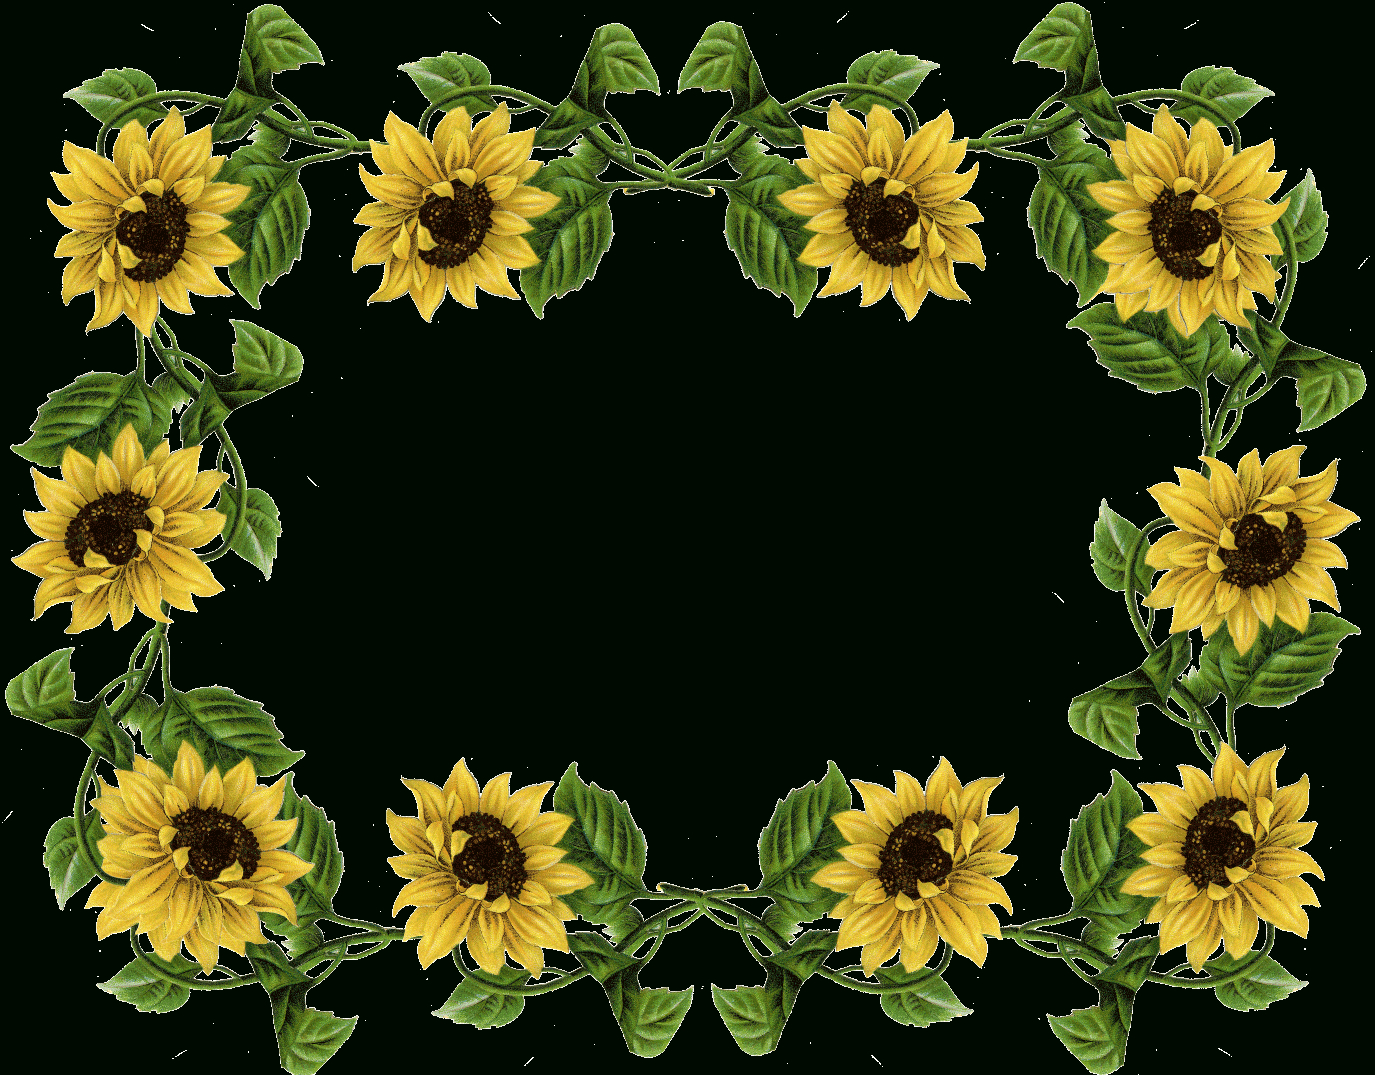 Sunflower Border Clip Art Free Clipart Collection - Free Printable Sunflower Stationery